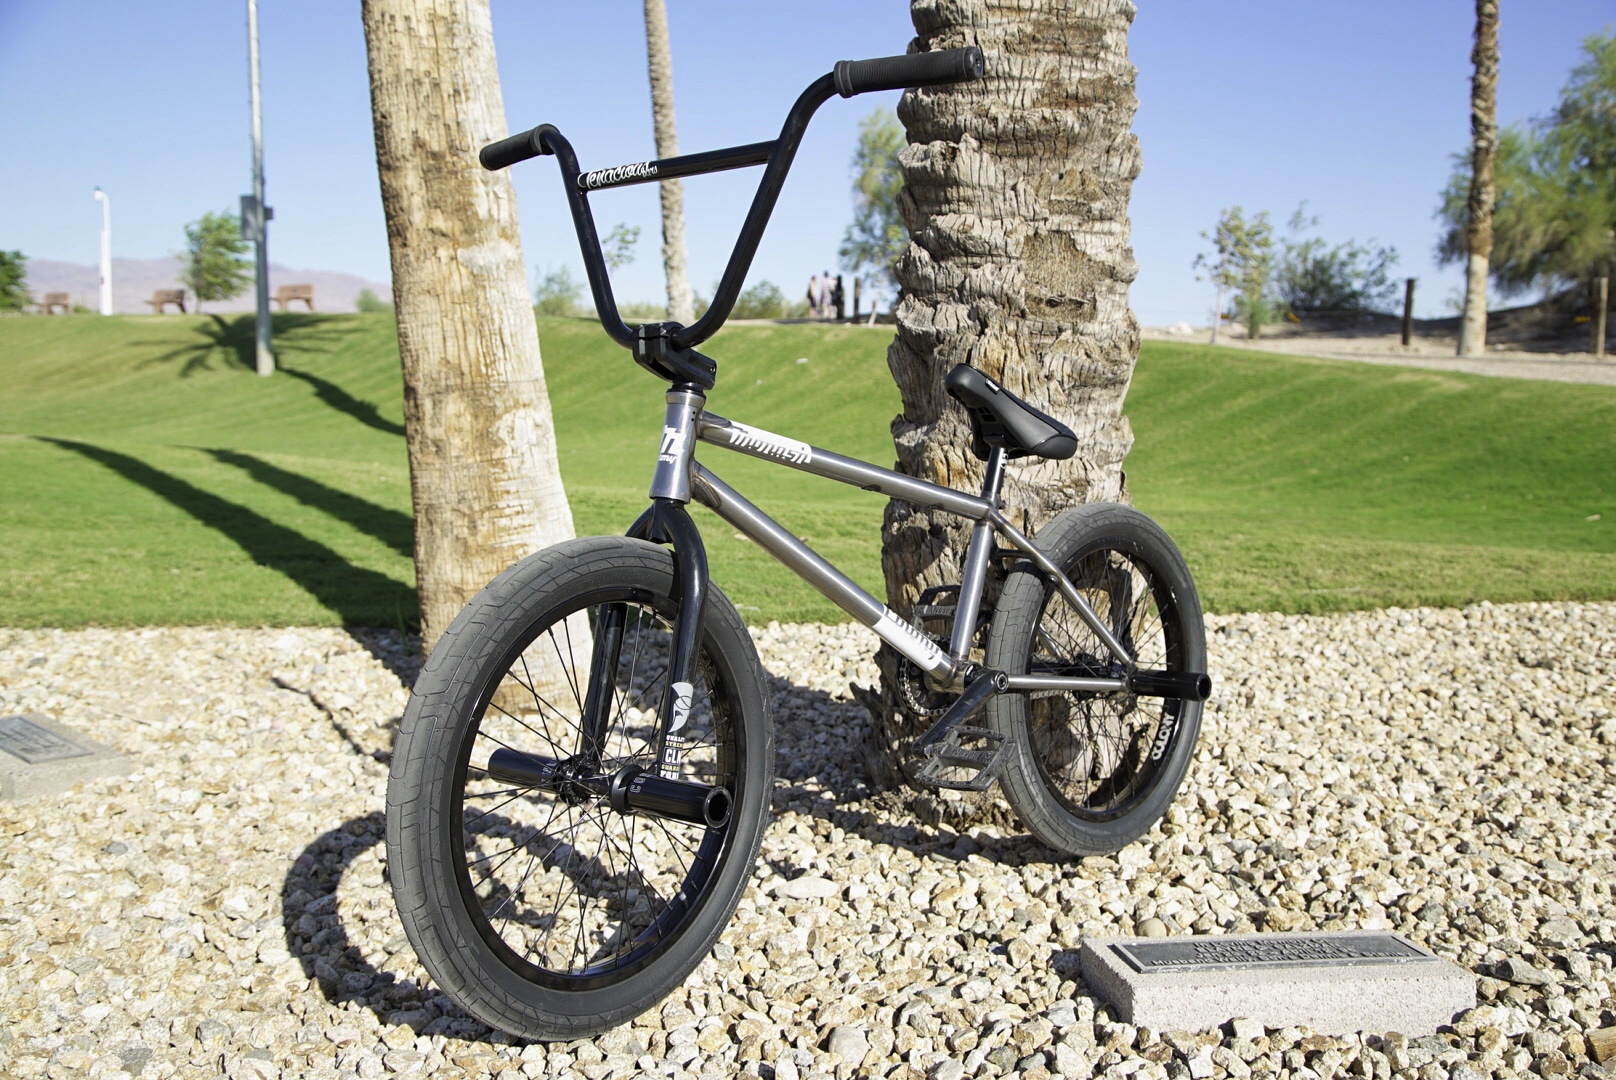 Chris Bracamonte Bike Check